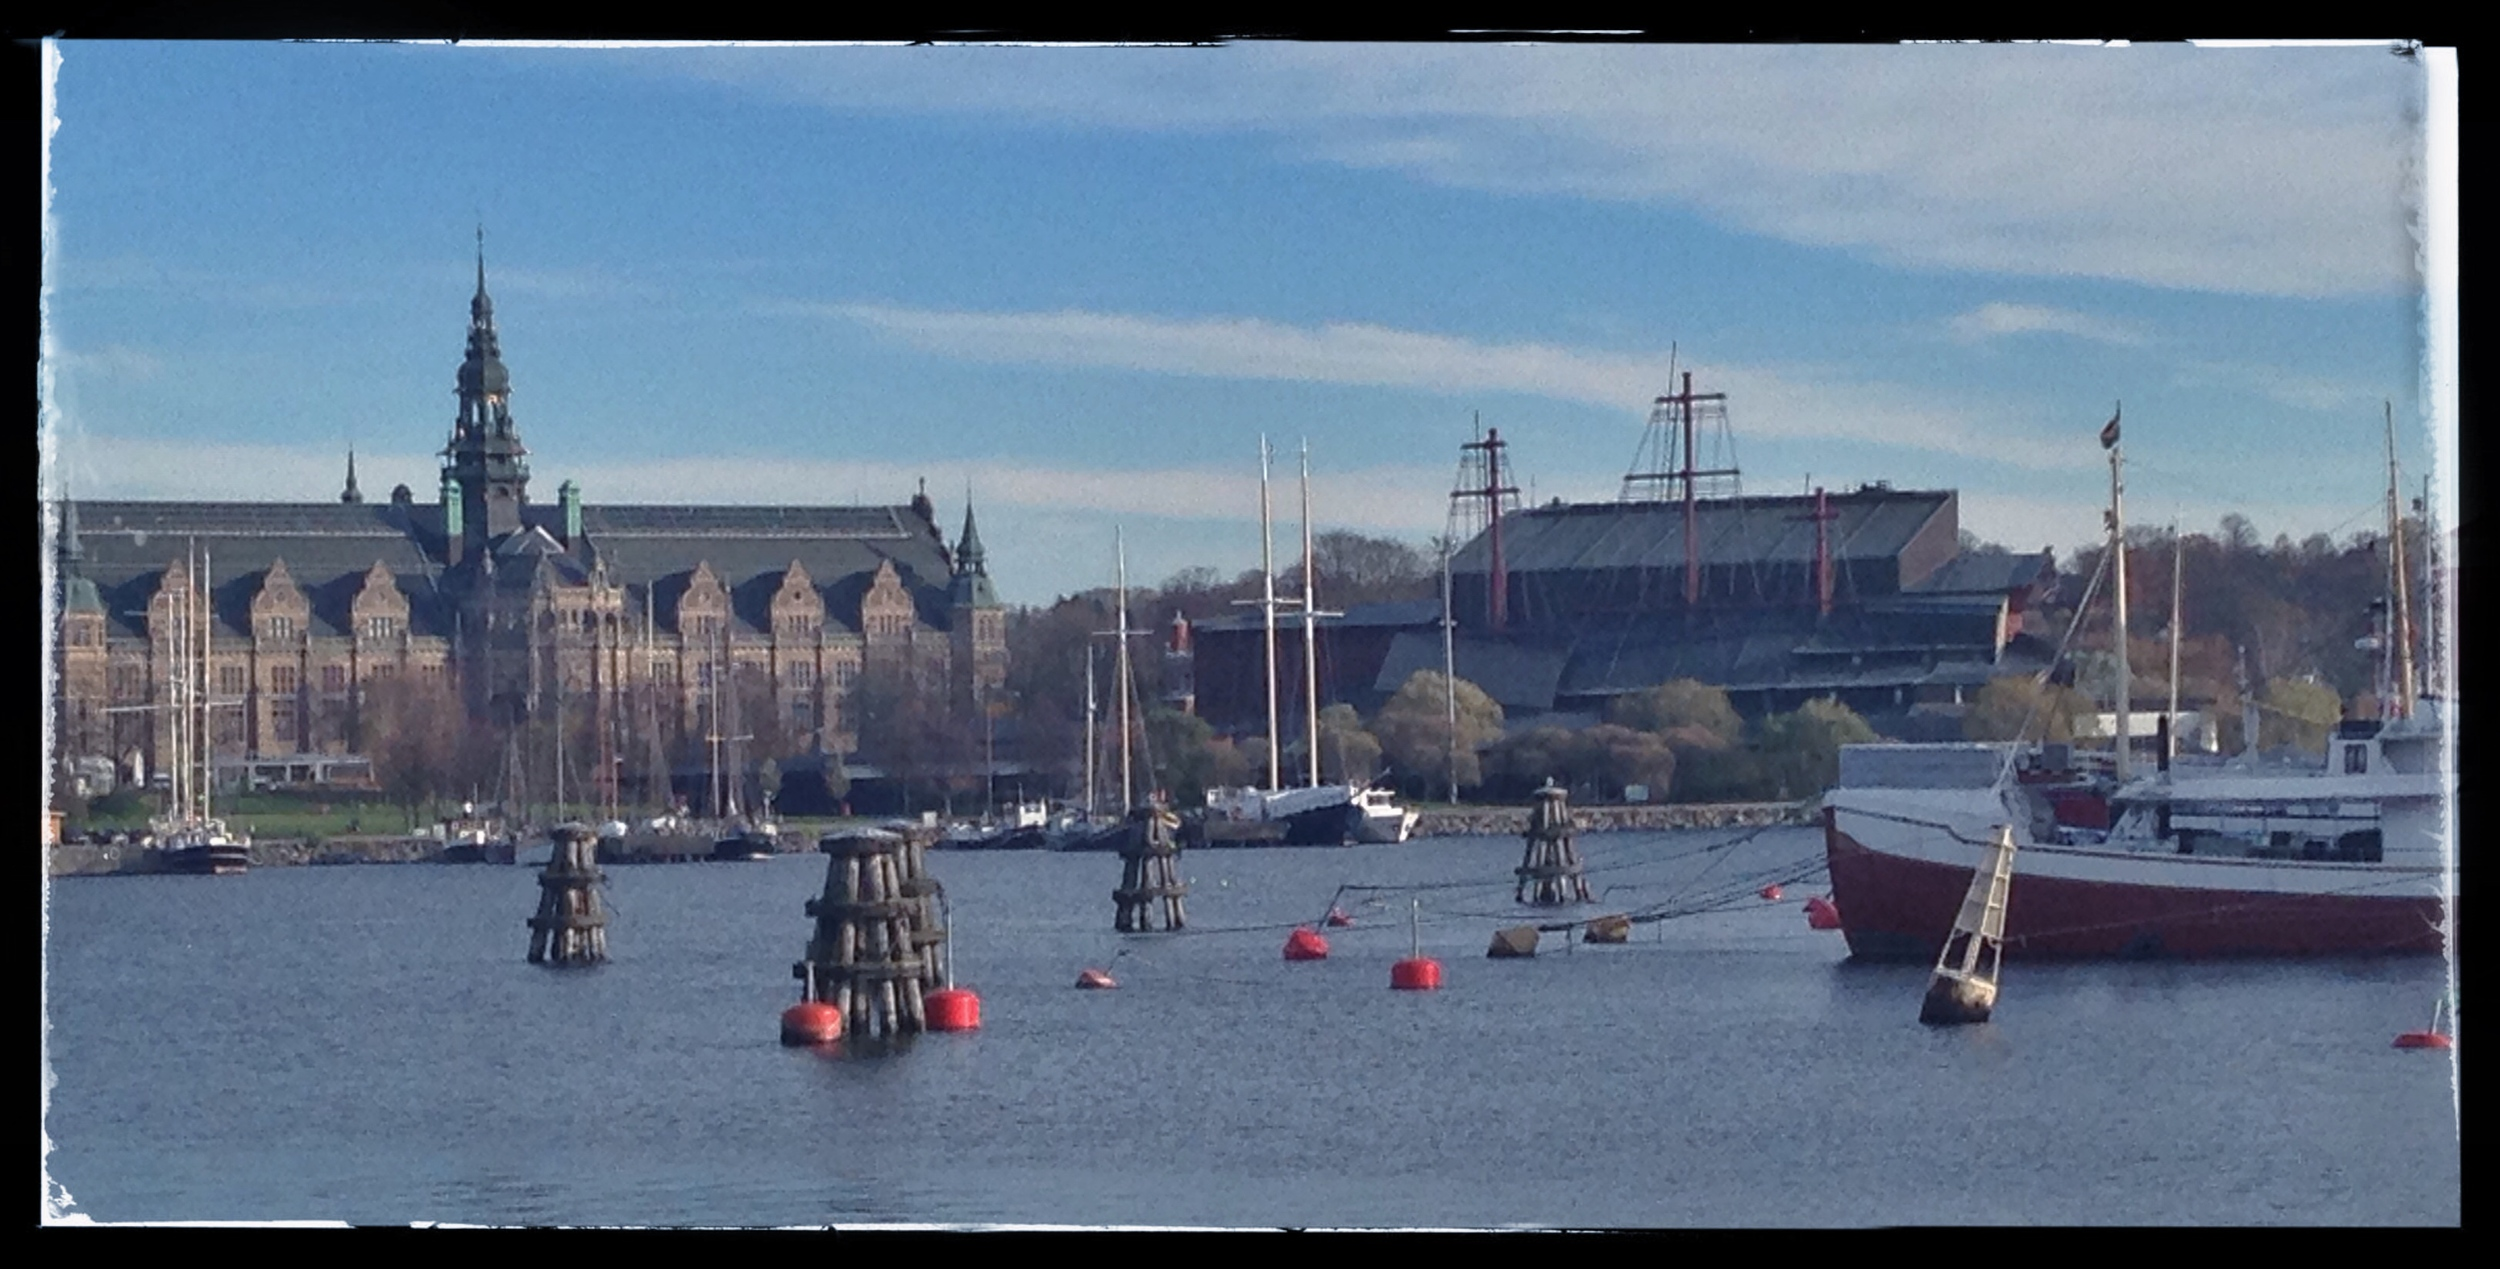 Vasa Museum on the right on the island of Djurgården in Stockholm © 2014 Design Story Works LLC